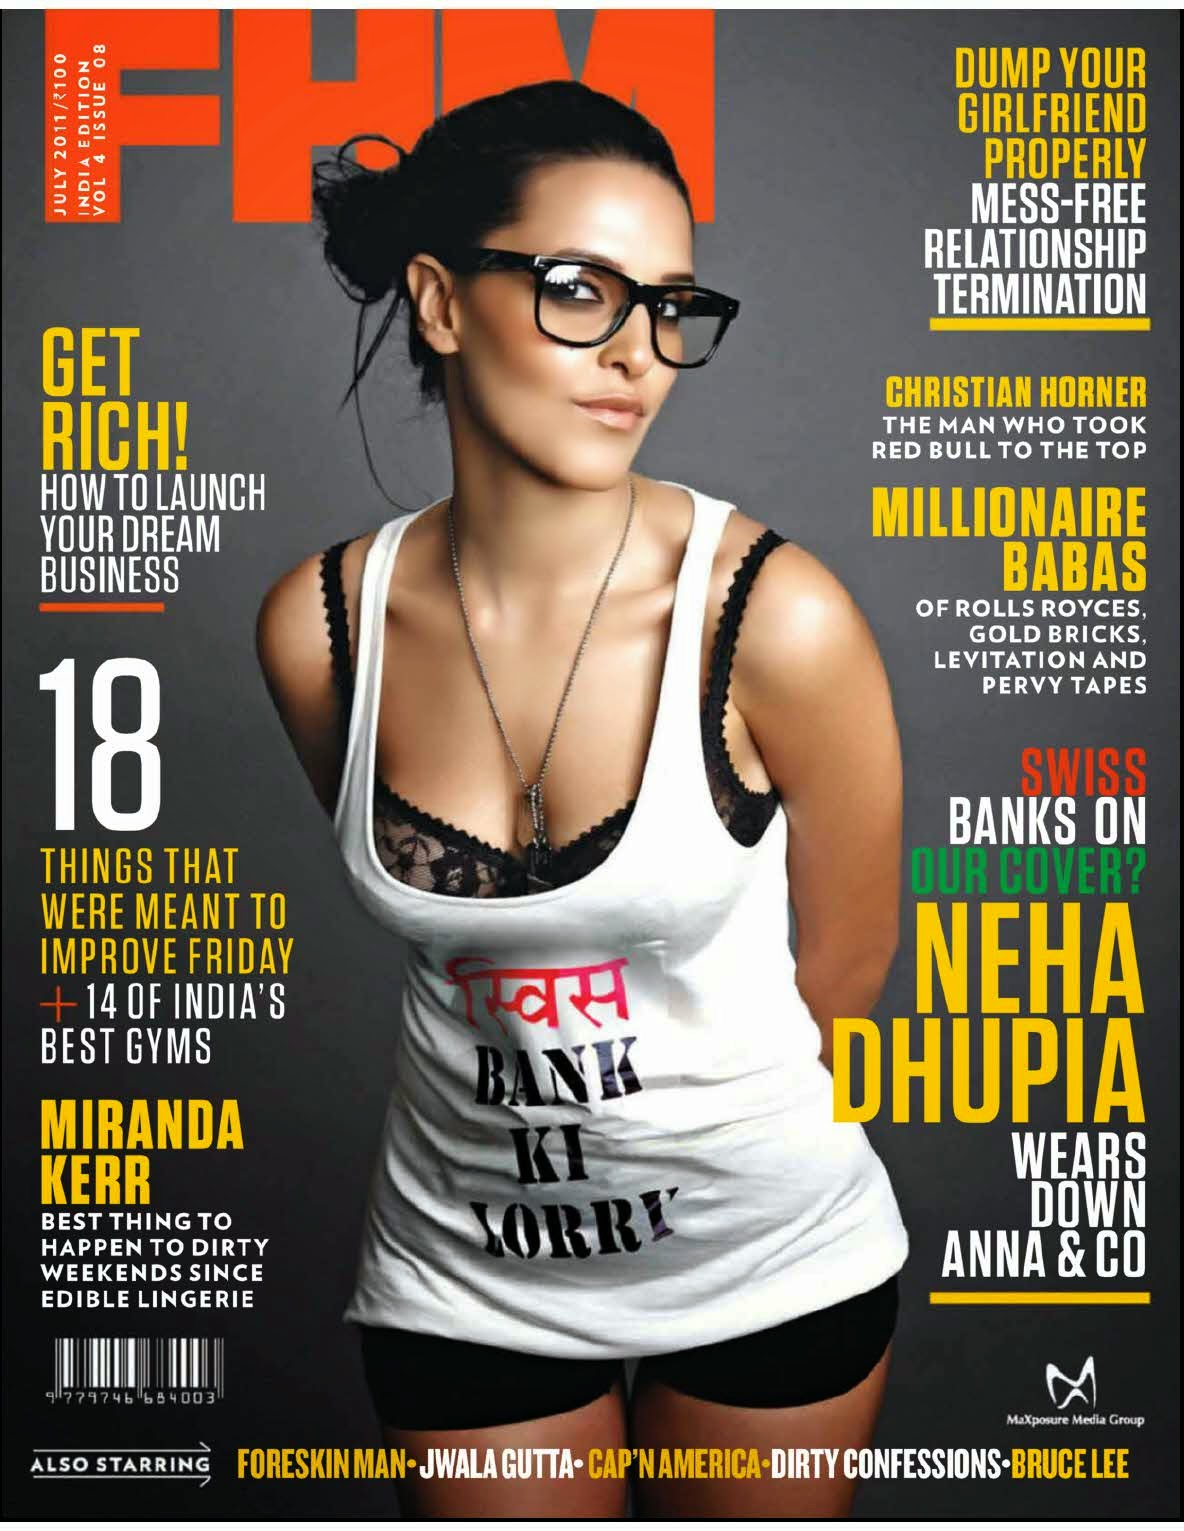 Neha Dhupia's FHM July 2011 Photo-shoot